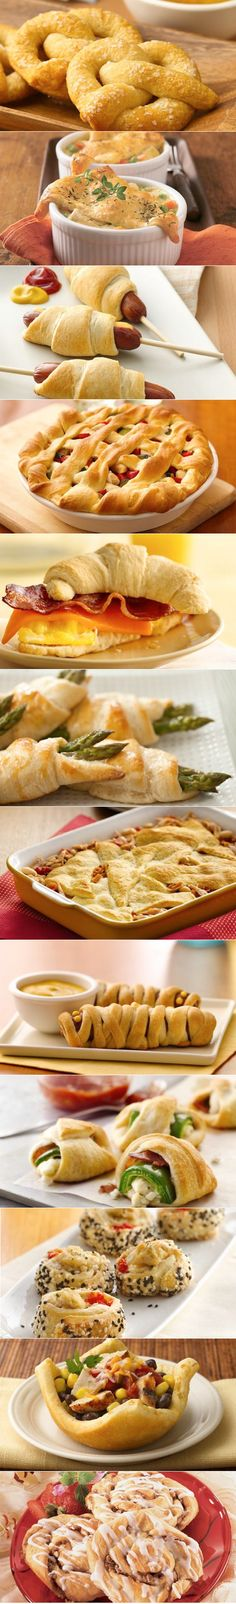 crescent roll recipes...might be fun to try when I have a ton of coupons for crescent rolls and I want to make something fast for the kids.